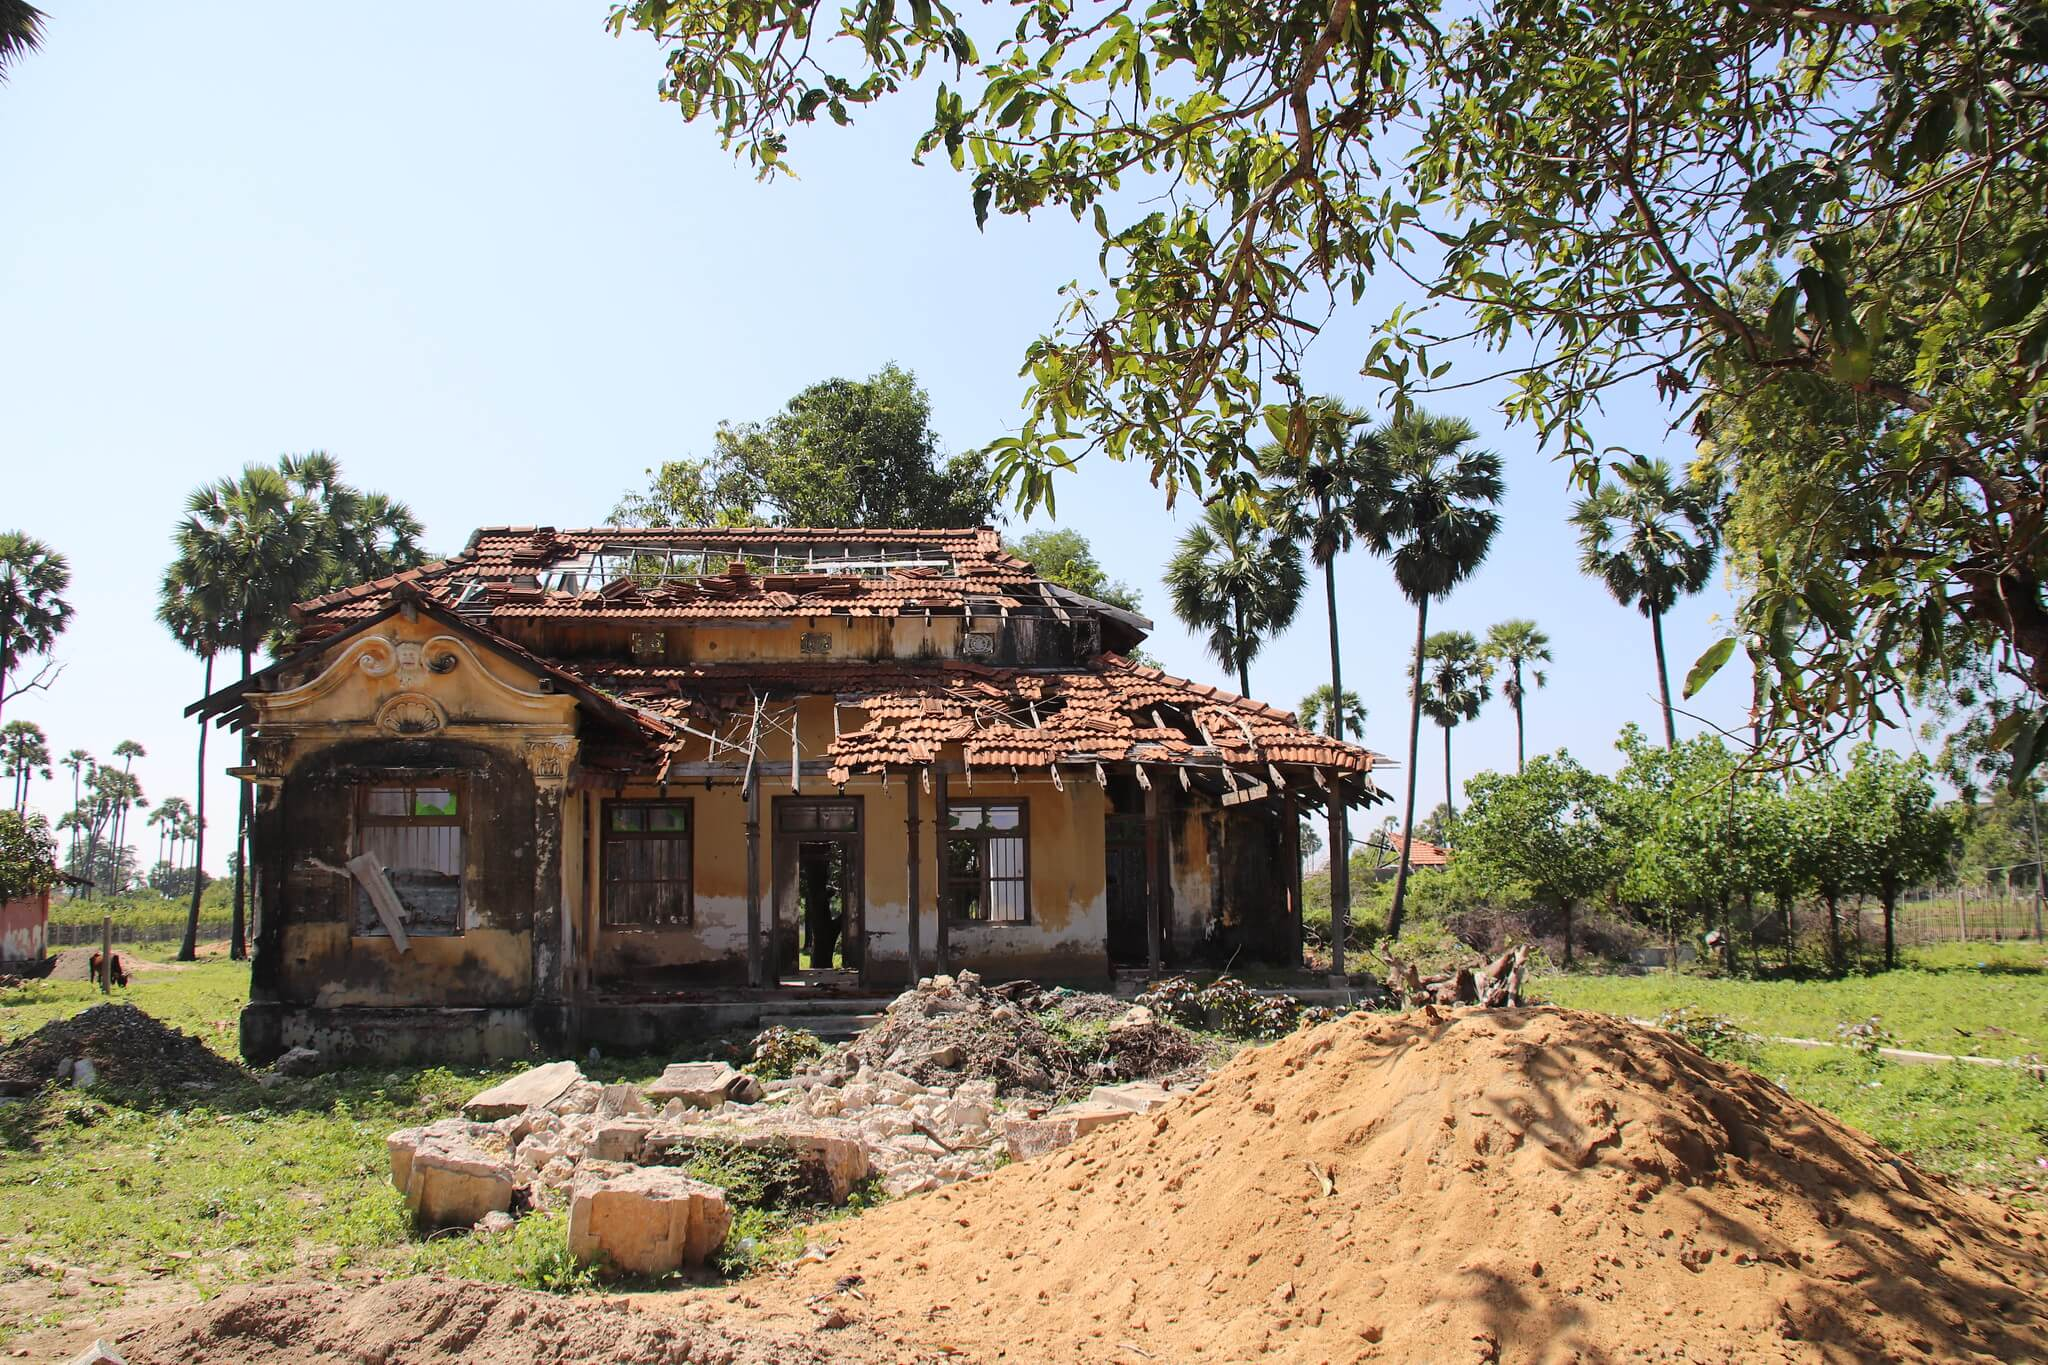 An abandoned house seen while backpacking in Sri Lanka's north